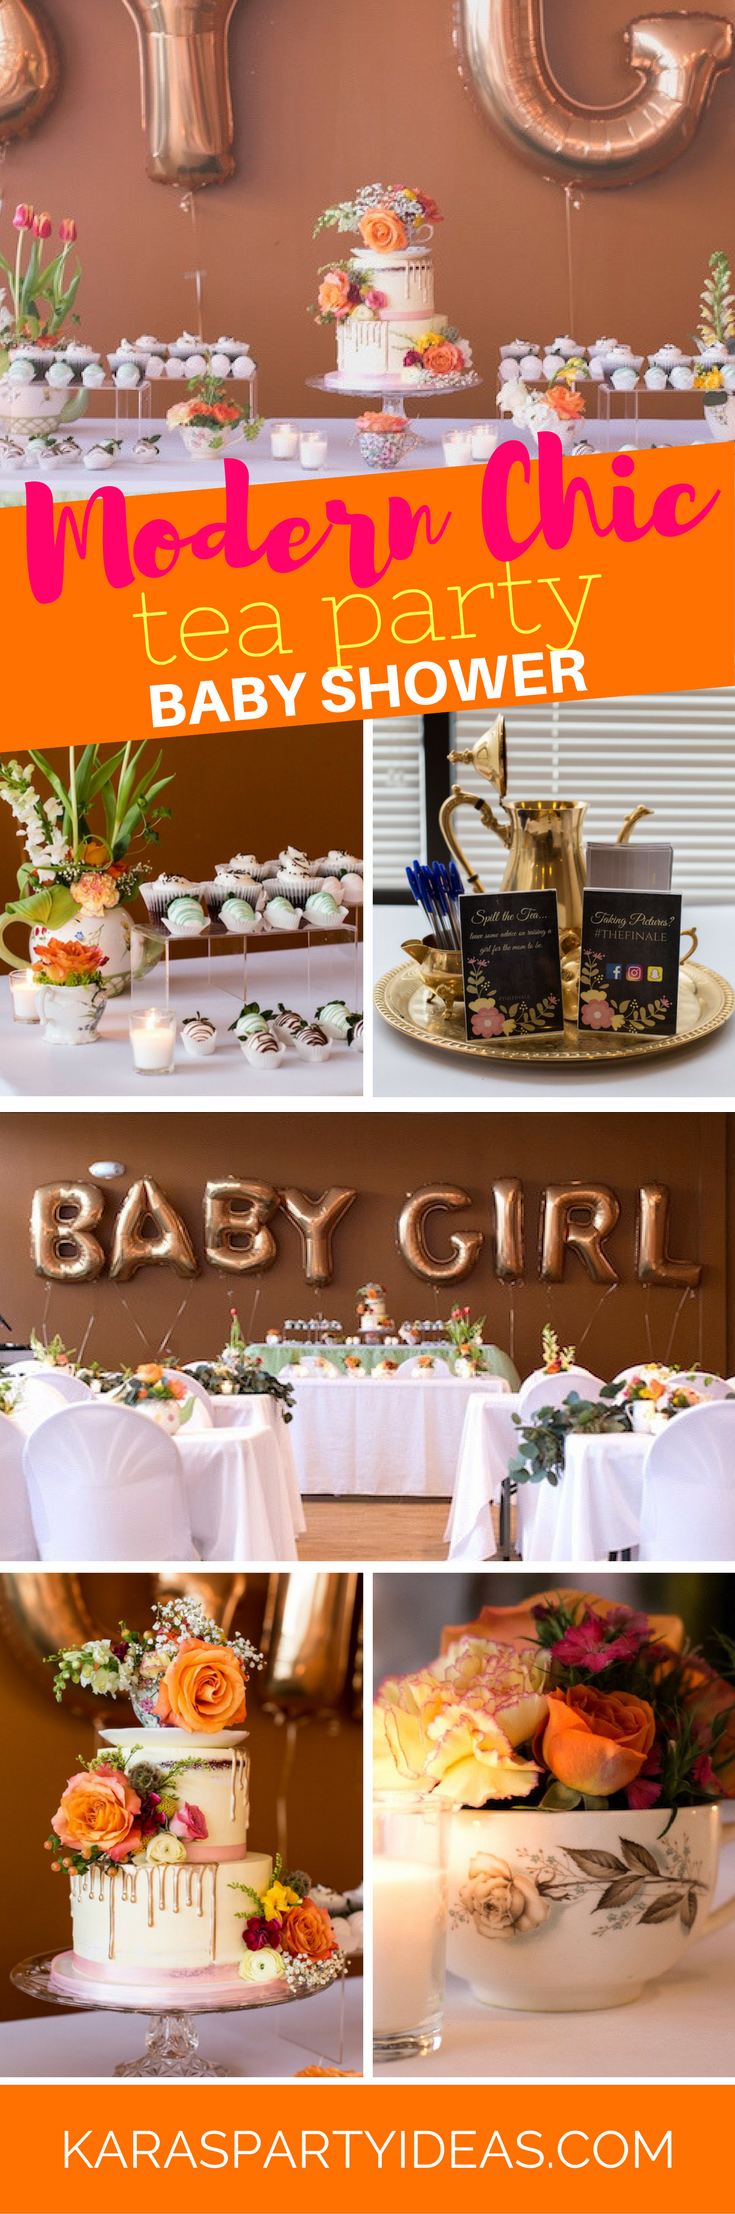 From kara s party ideas rustic dessert table display designed by - Modern Chic Tea Party Baby Shower Via Kara S Party Ideas Karaspartyideas Com